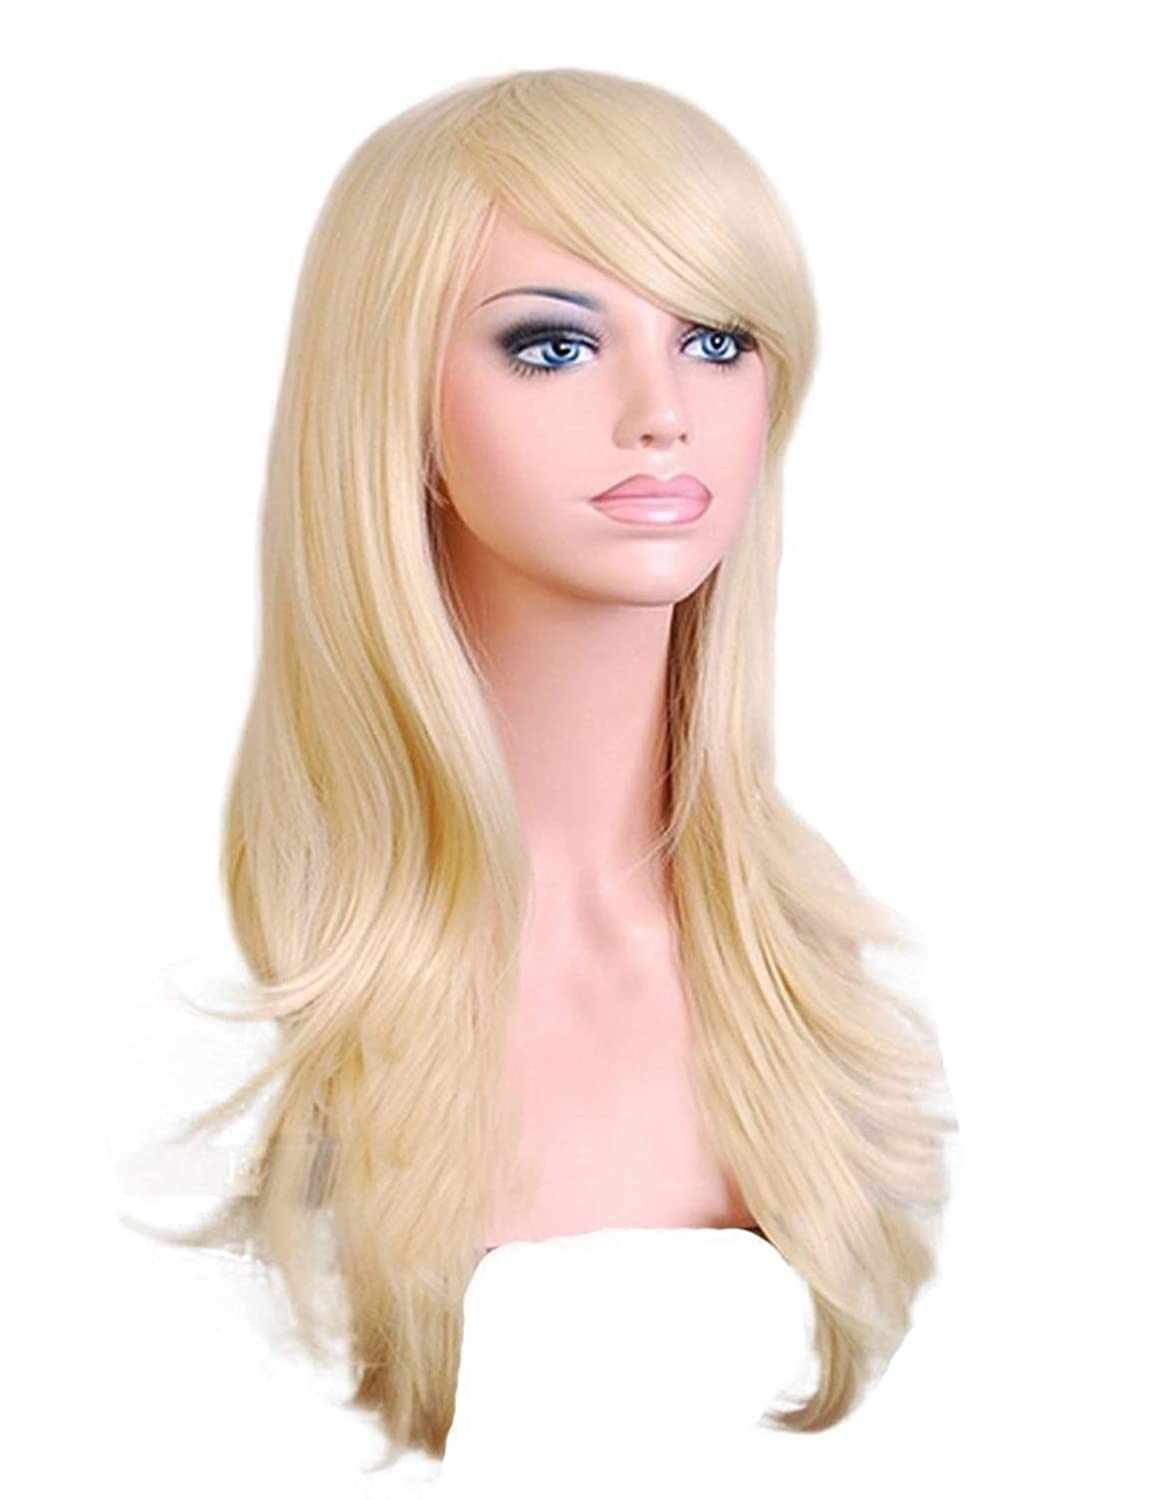 ArRord Long Hair Curls Cosplay Wigs Party Wig Multicolor Available 9 Colors